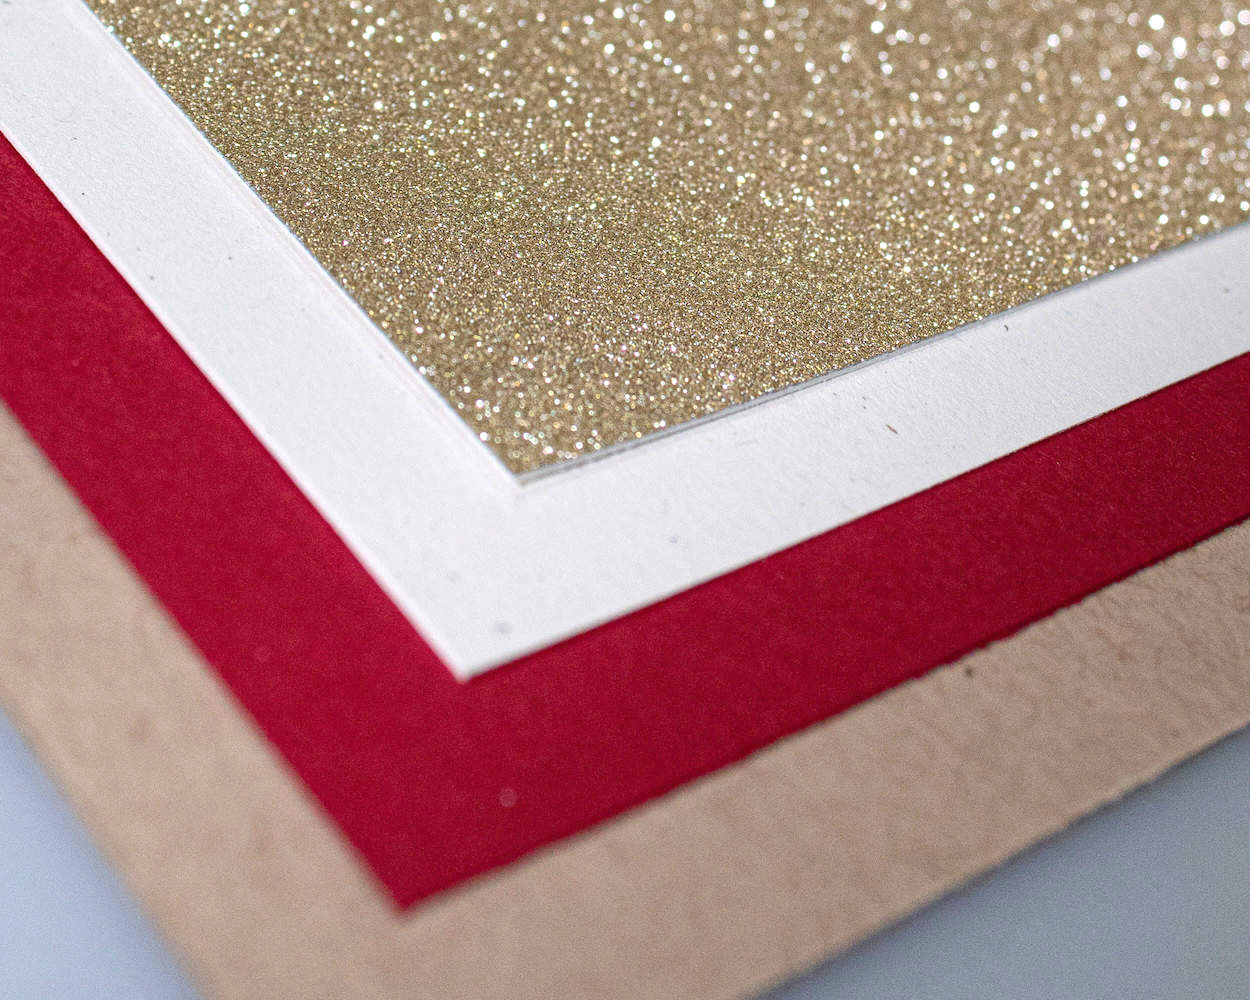 Gold Touch Glitter, True White Speckletone, Electric Red Foundations and Oatmeal Speckletone Papers from Cardstock Warehouse Paper Company